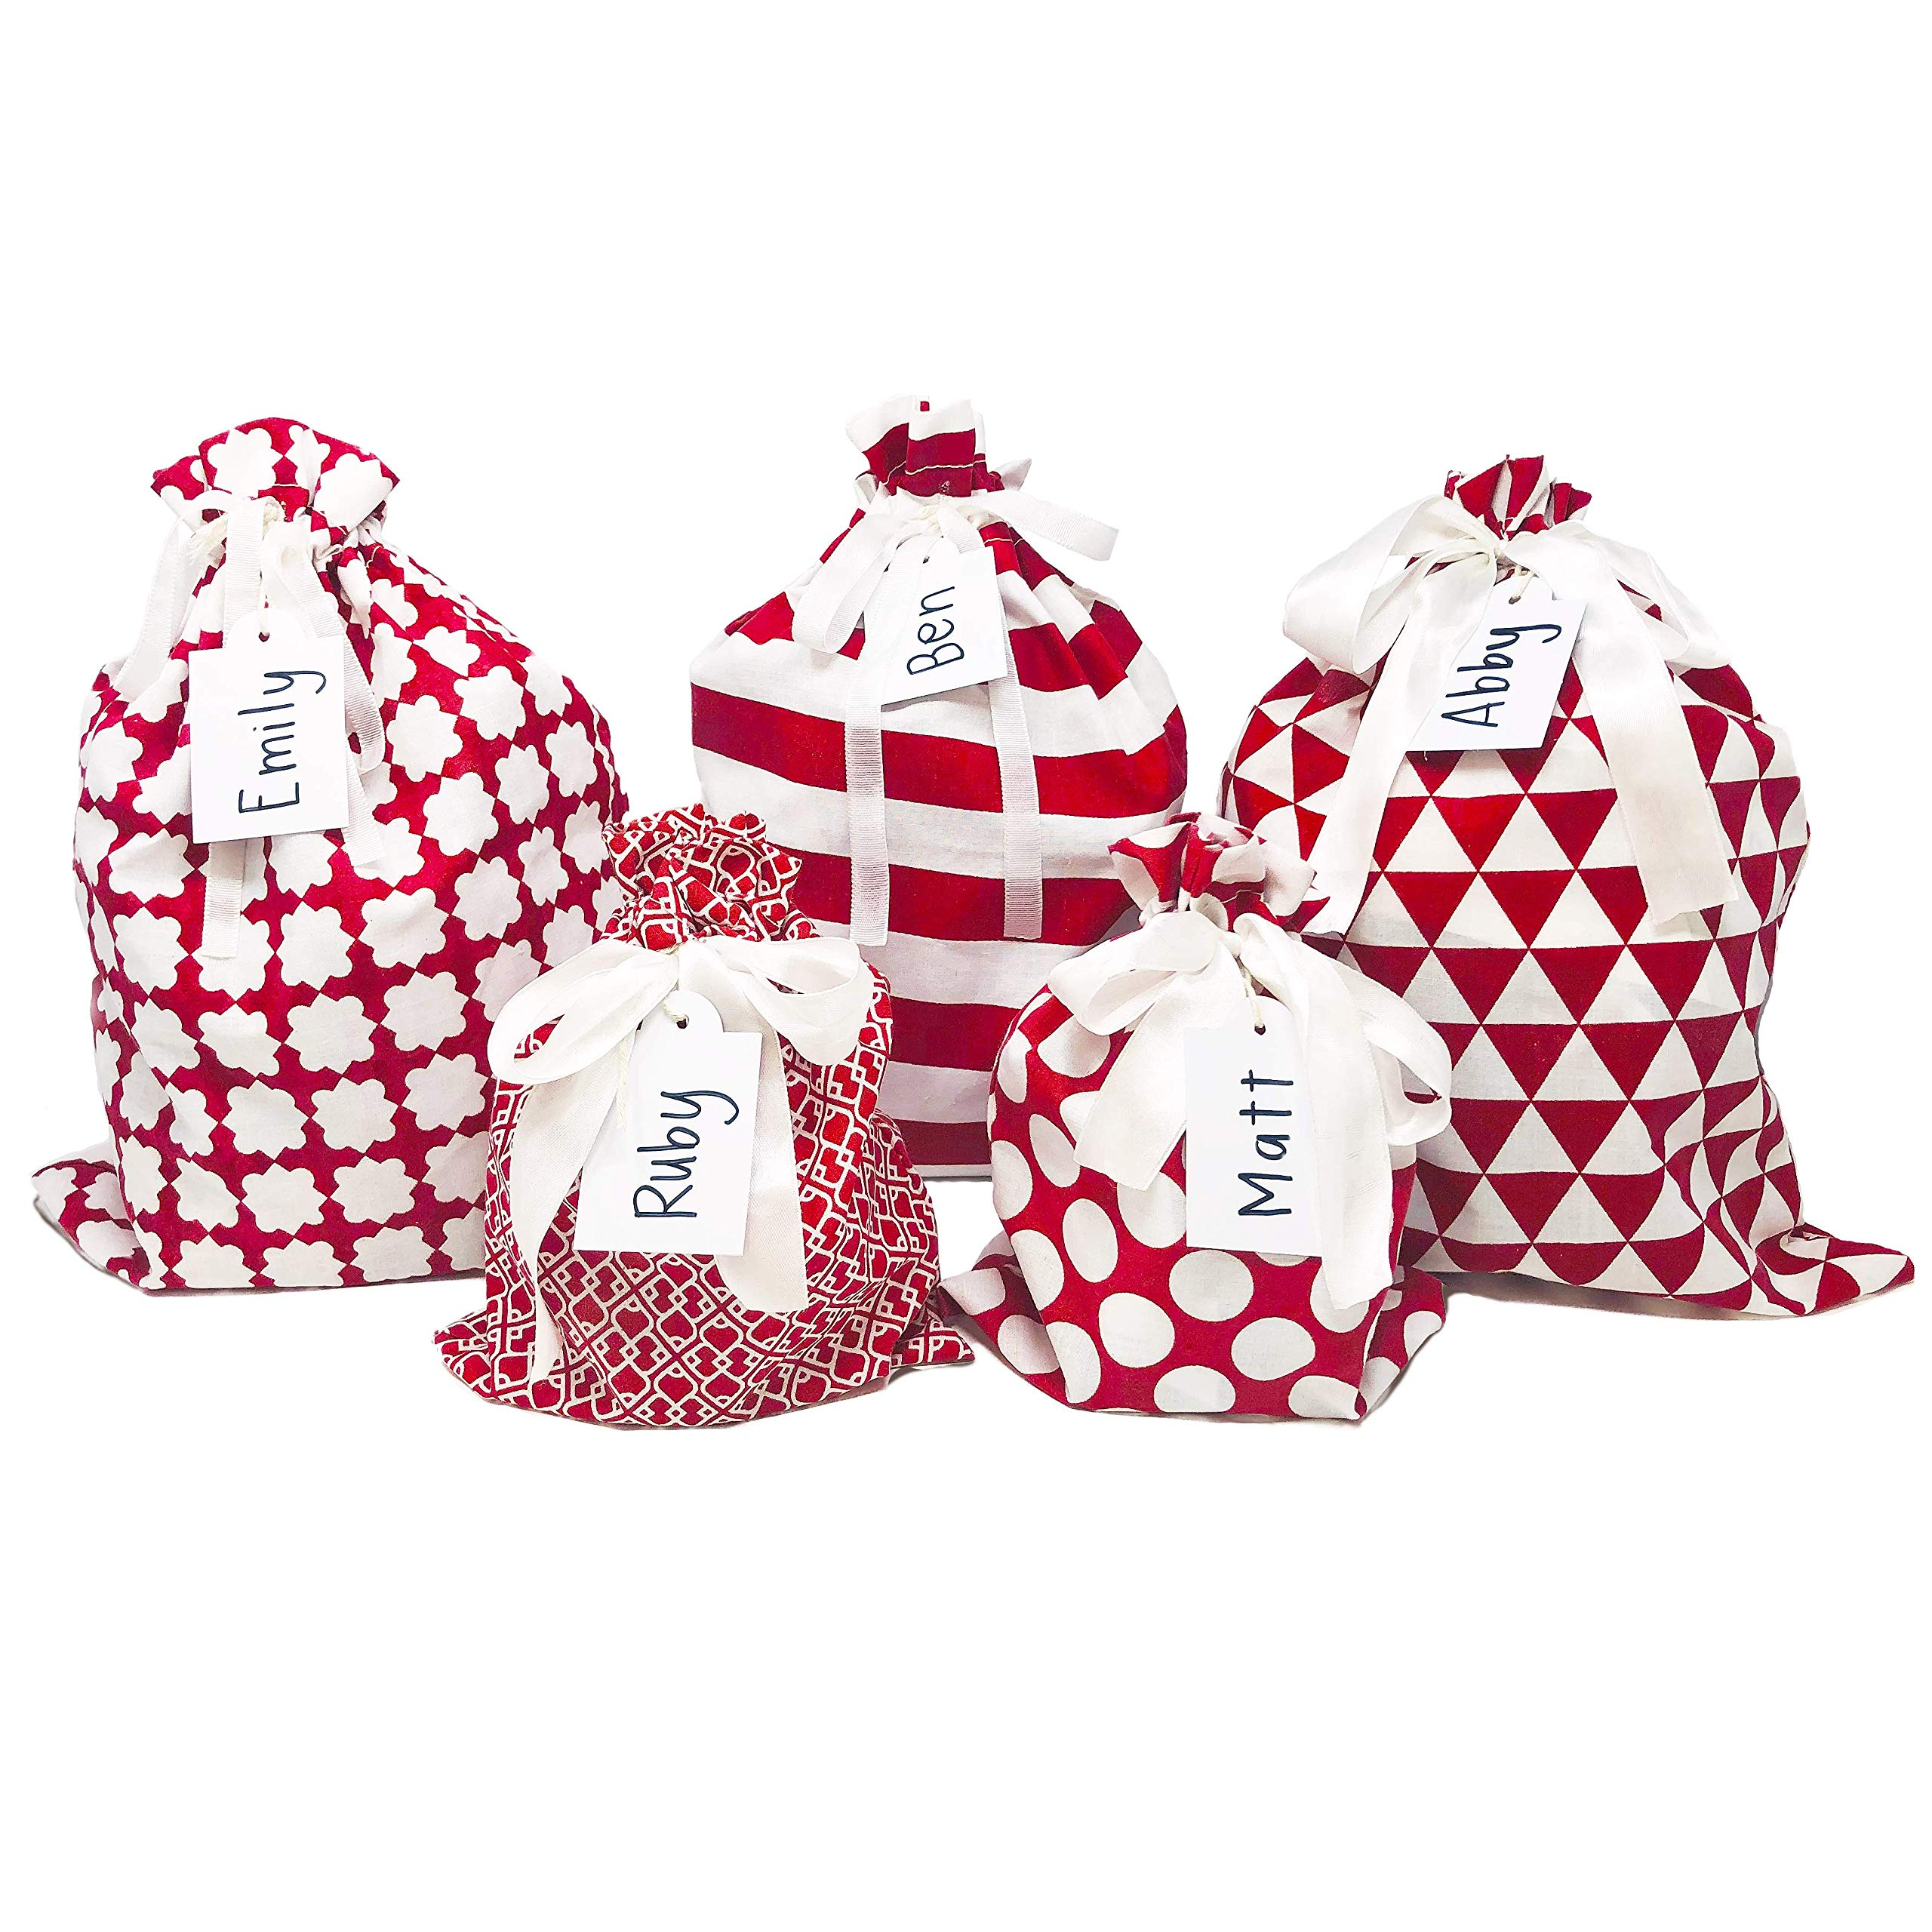 """Appleby Lane Fabric Gift Bags (Standard Set, Red) 100% Cotton, Set of 5 Bags: Three 16""""x12"""" and Two 10""""x8"""""""